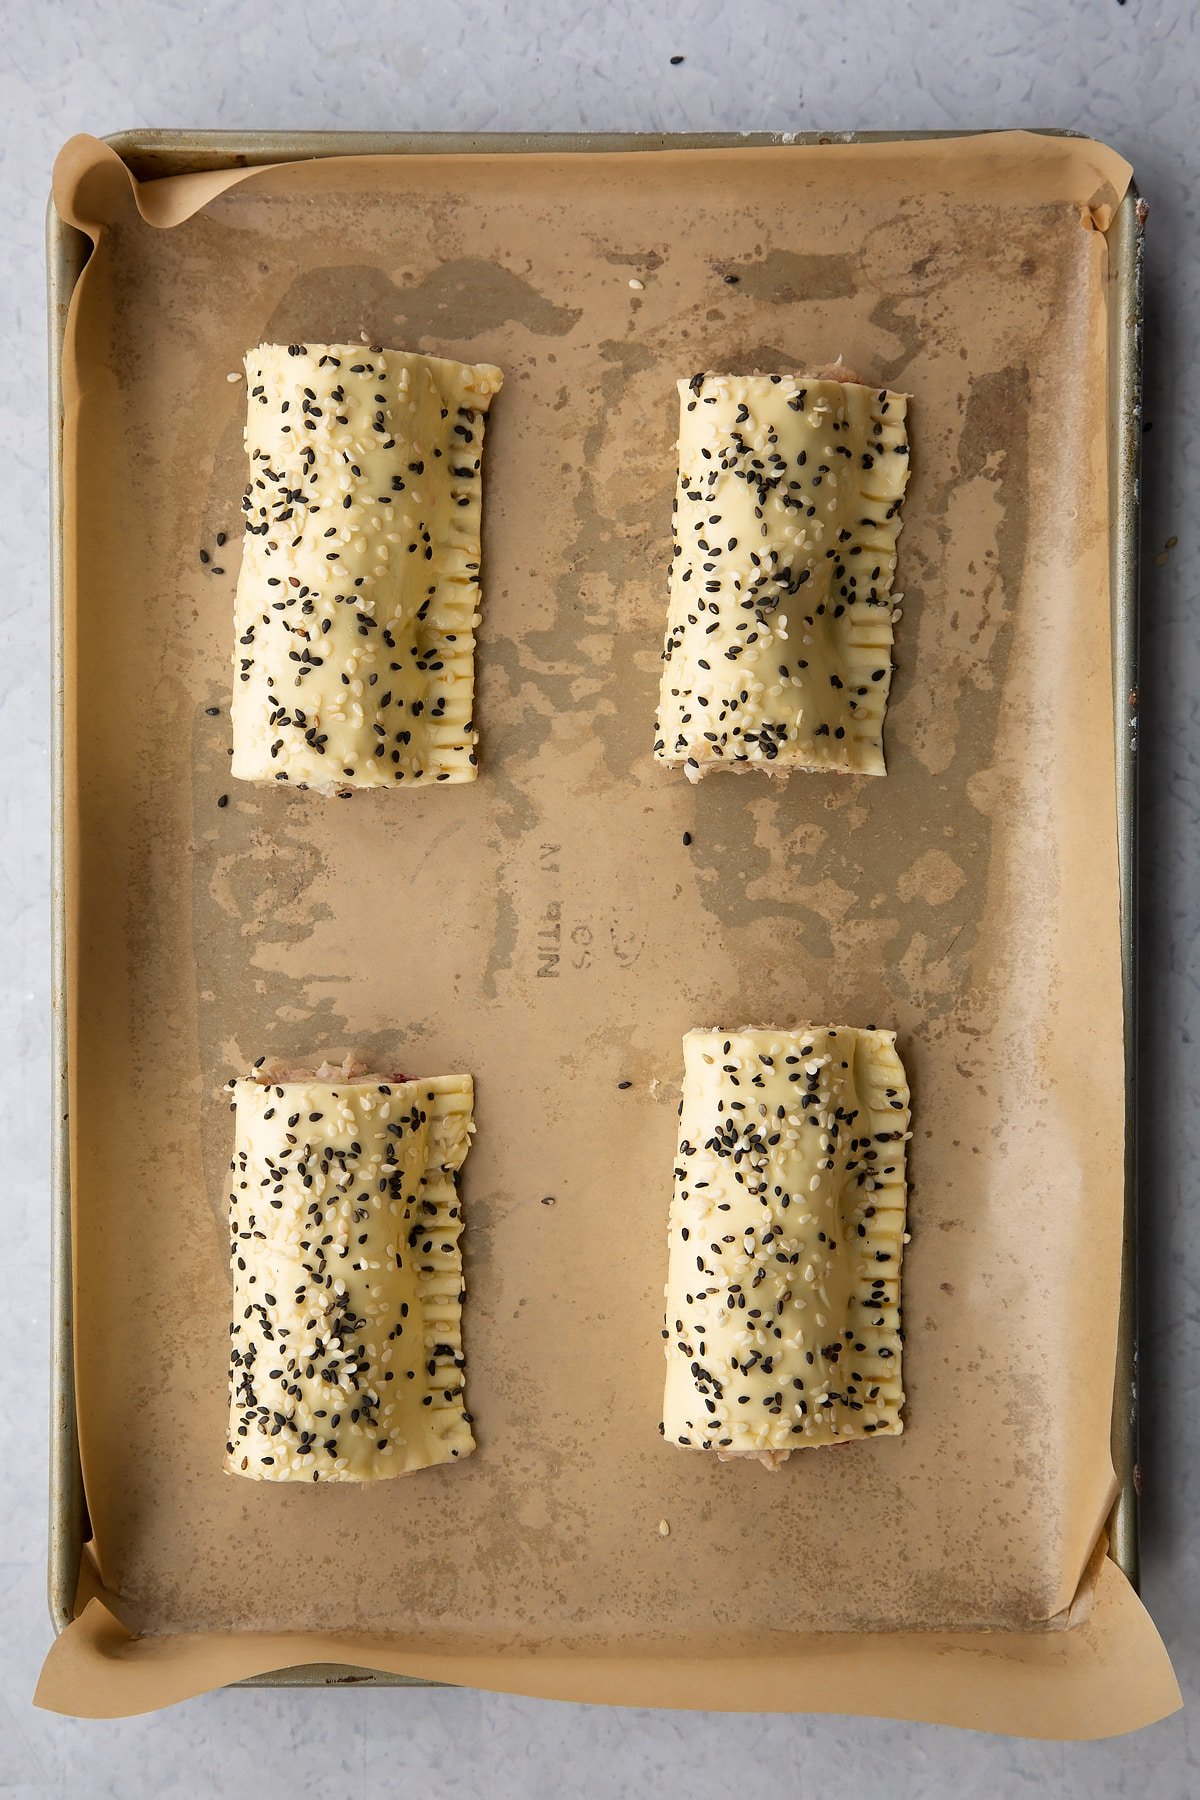 Four raw festive sausage rolls on a baking tray lined with baking paper.